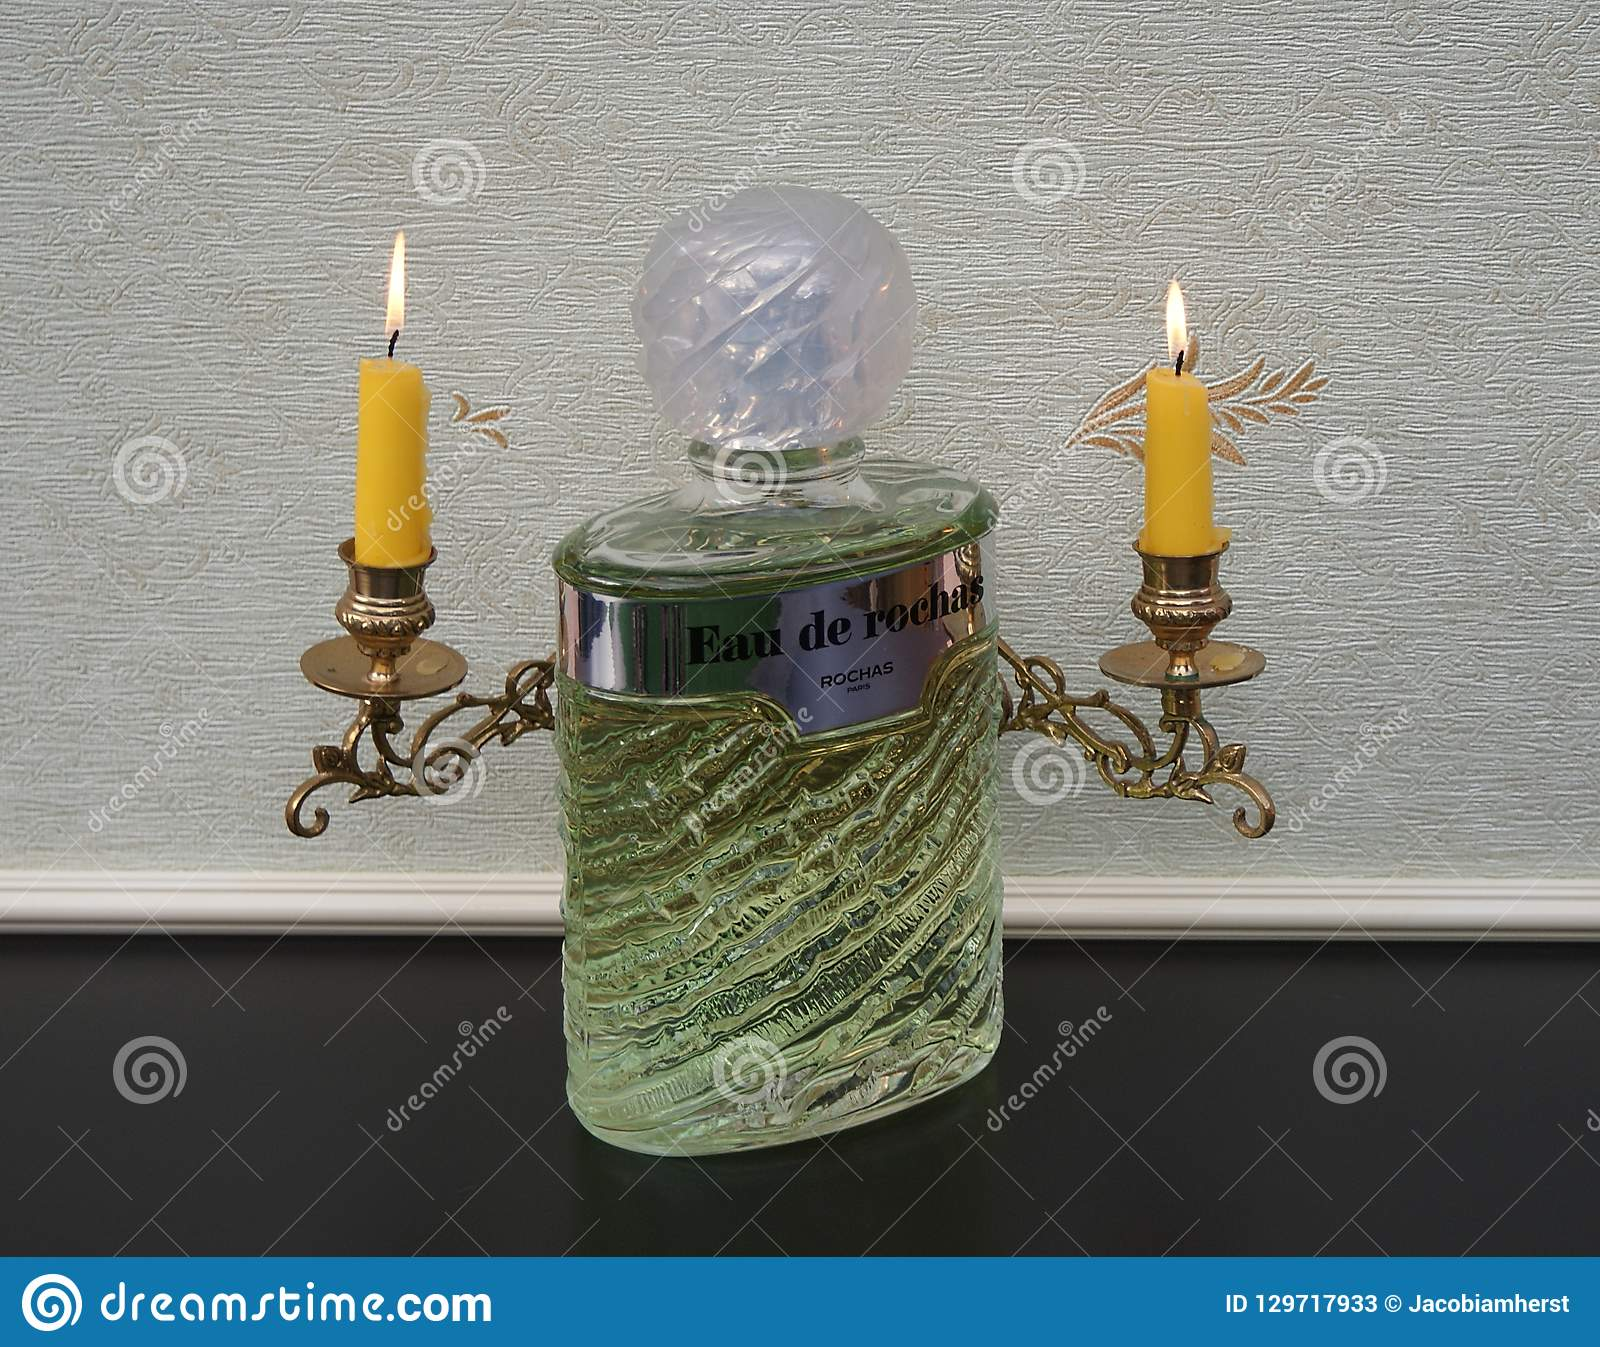 Eau de Rochas, fragrance for ladies, large perfume bottle in front of a piano candelabra with shining candles